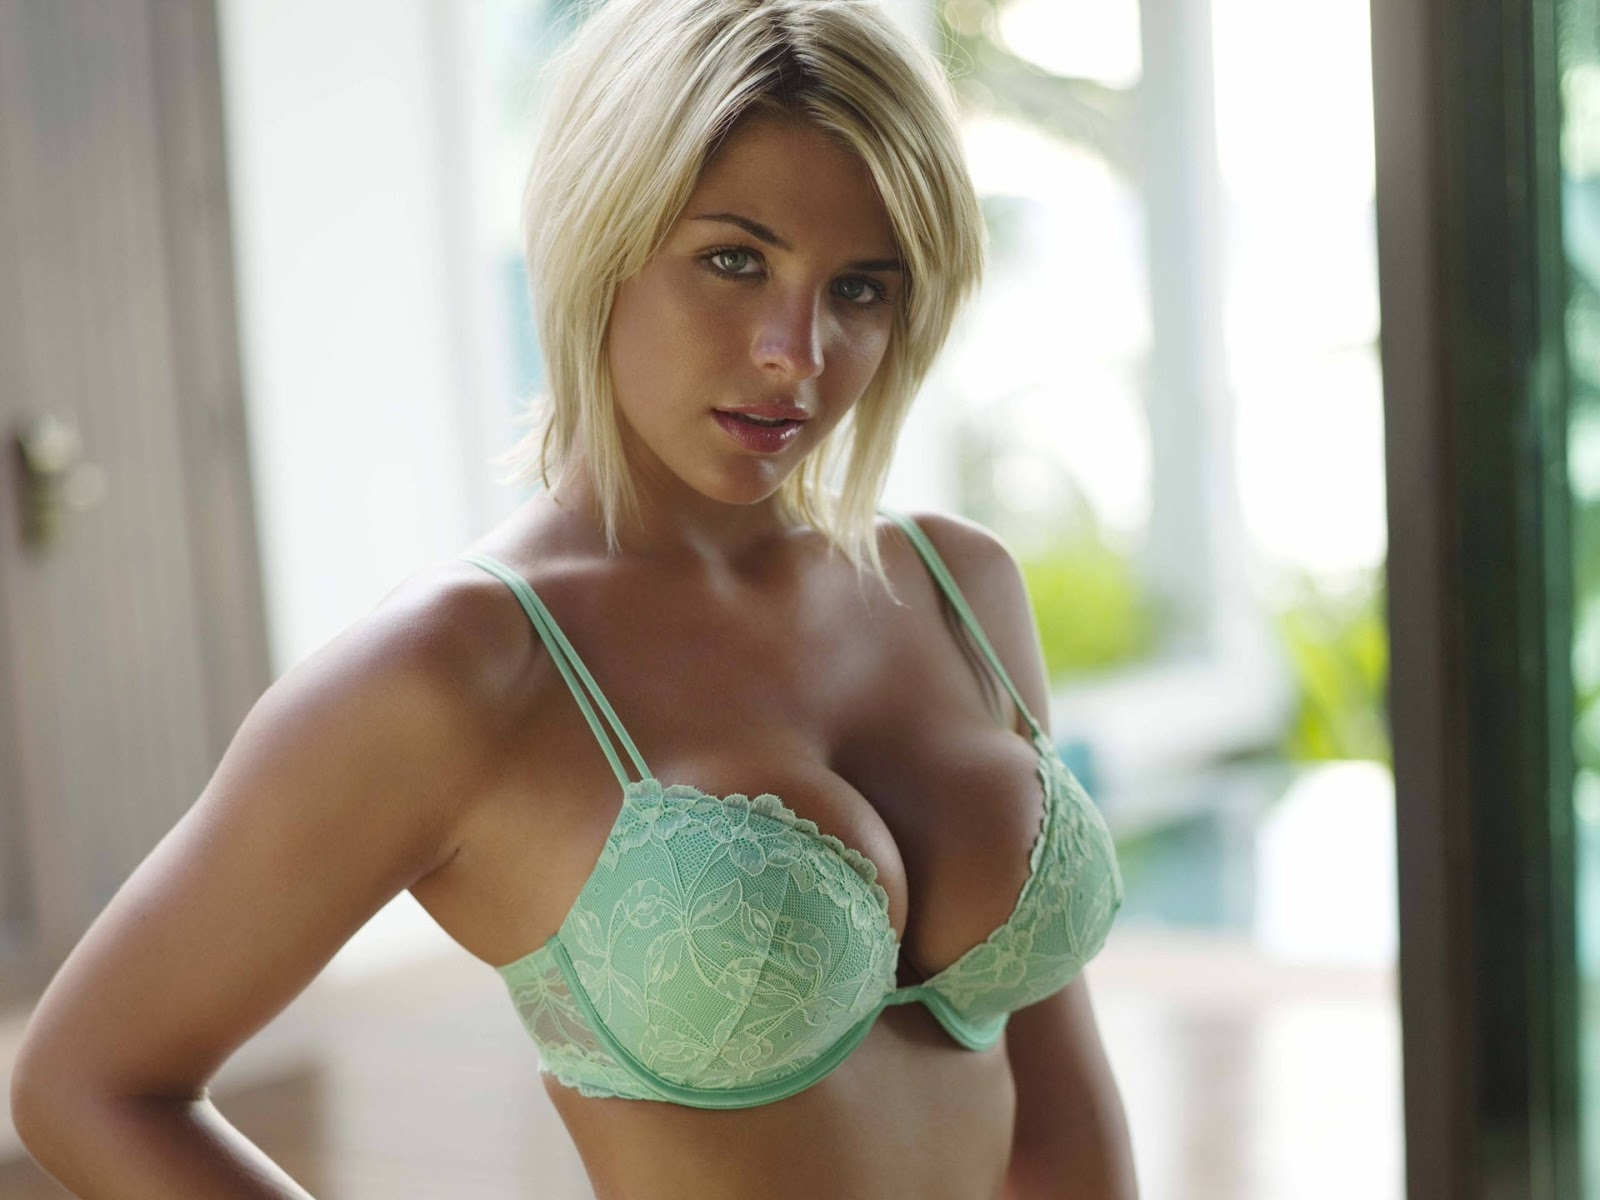 gemma atkinson image 40 - photo #16